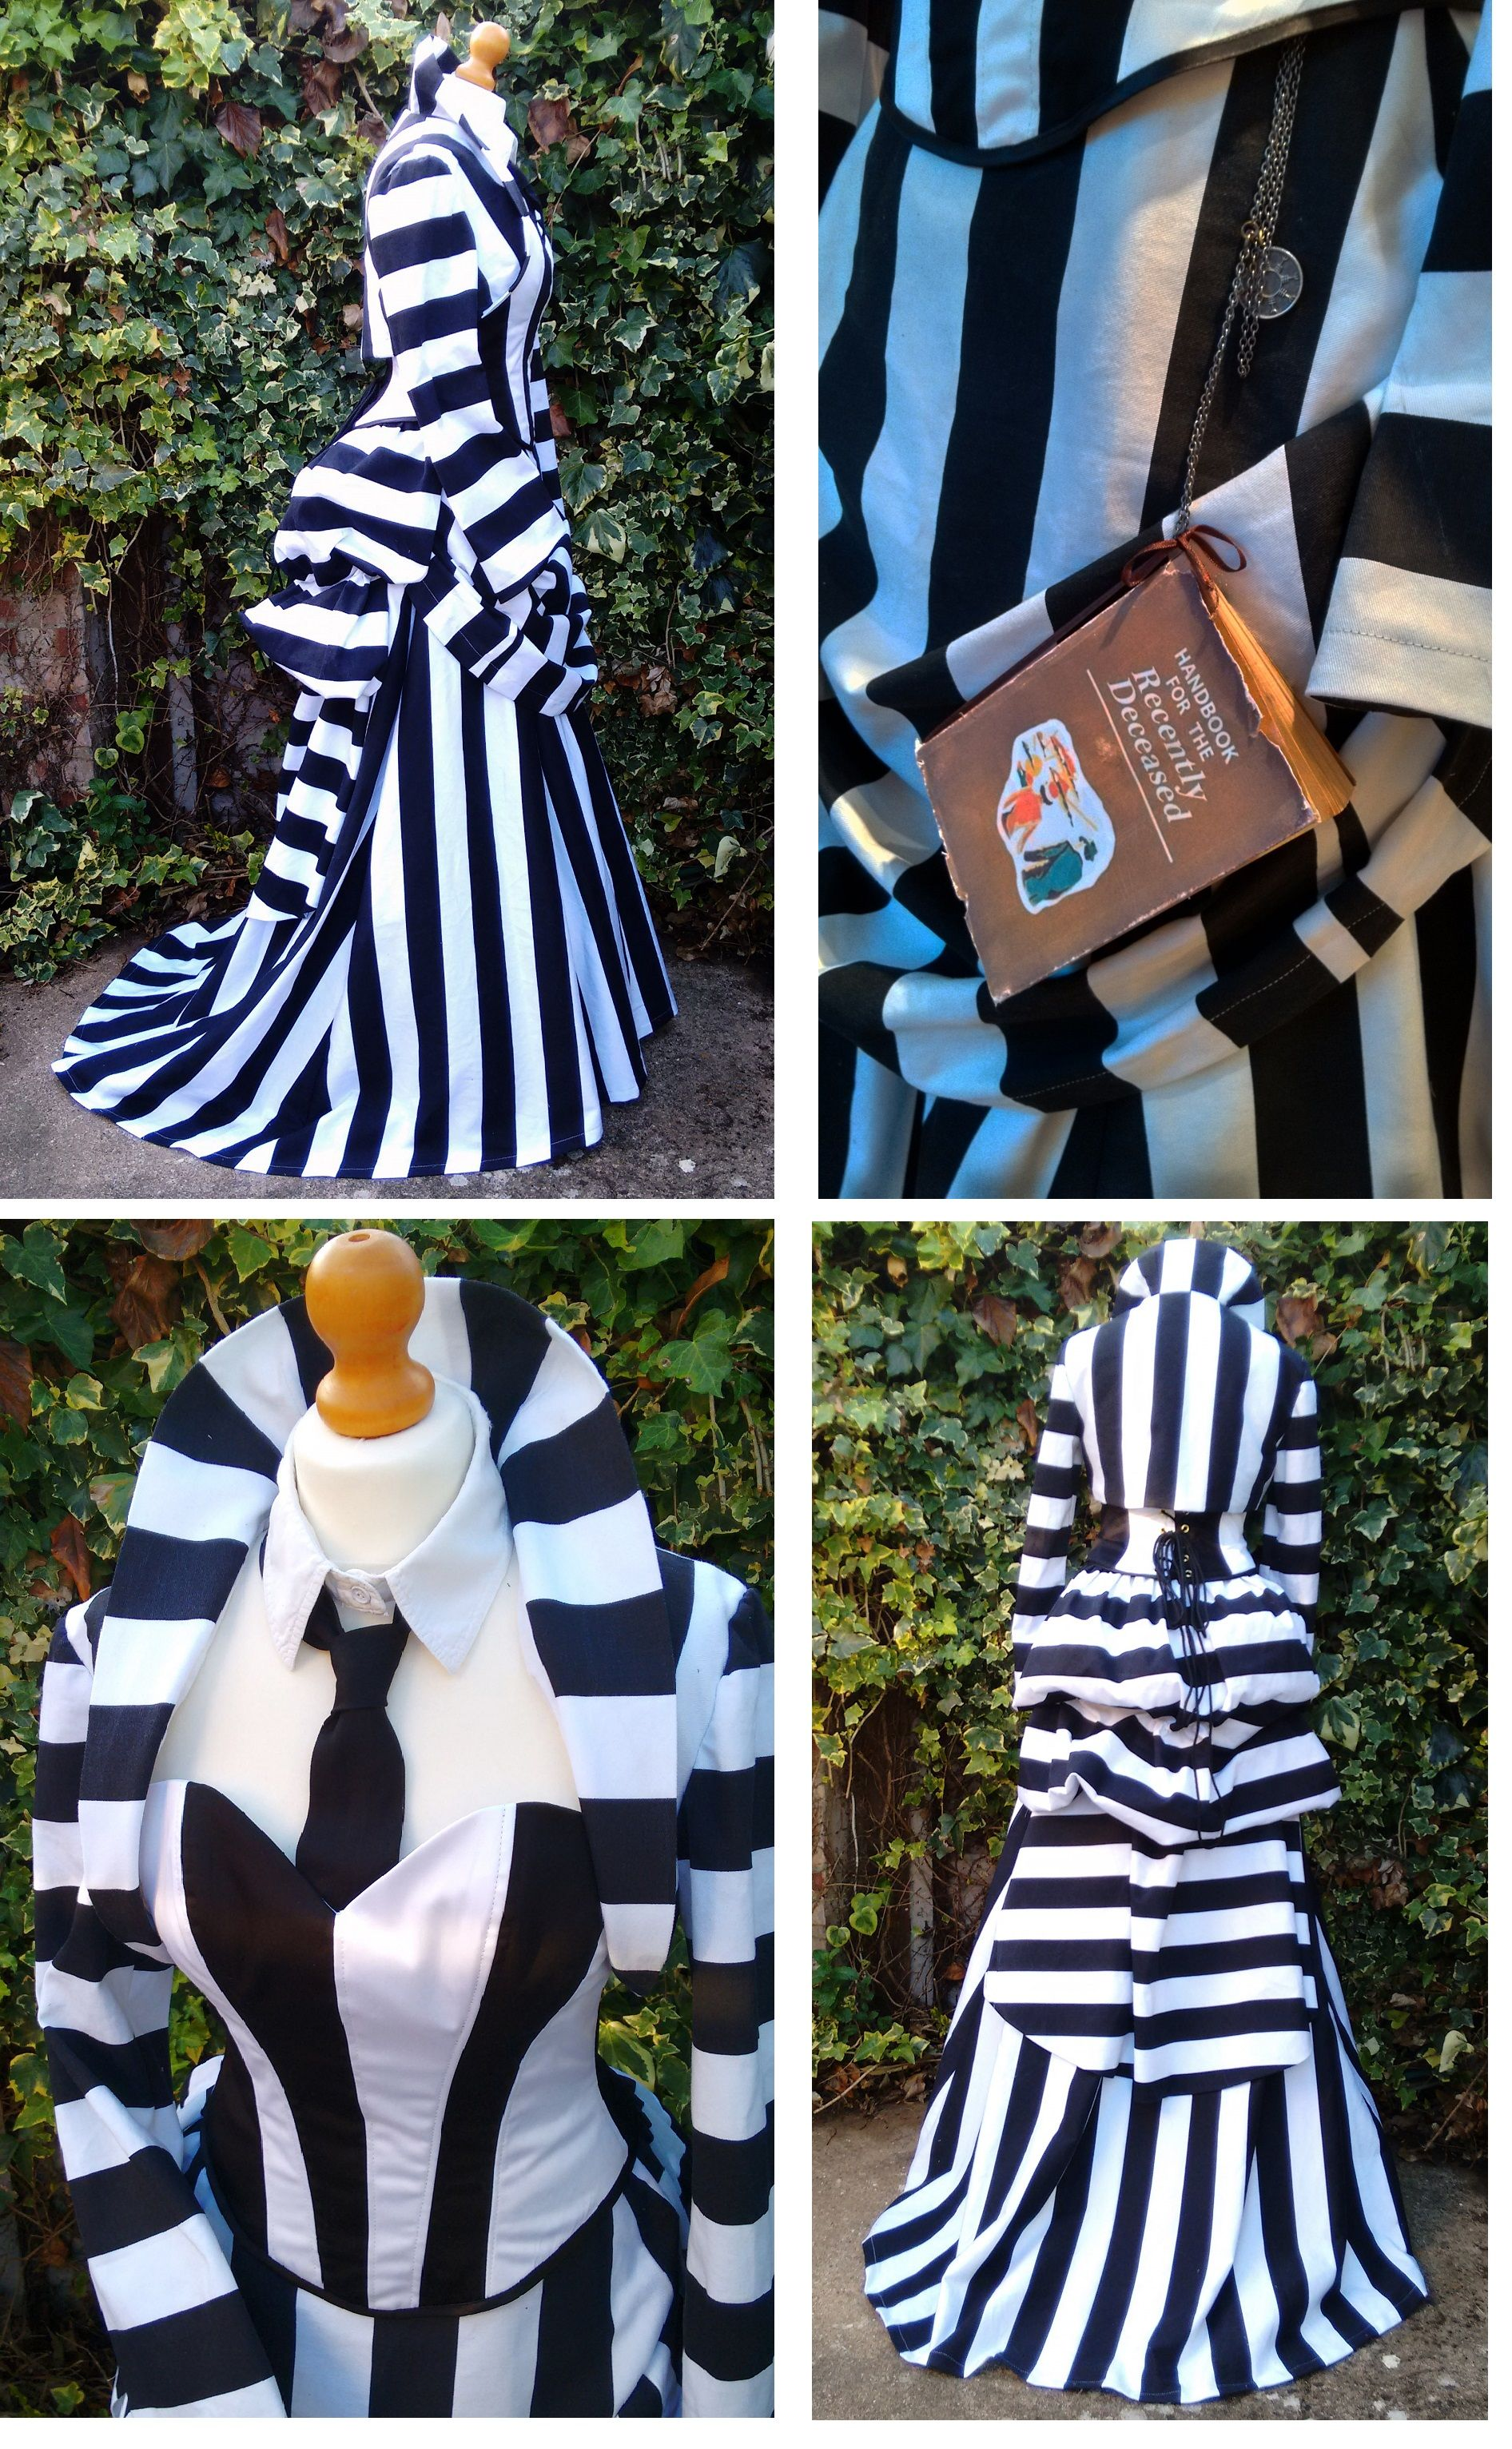 So Say It Once Say It Twice Three Times A Charm Steampunk Beetlejuice Betelgeuse Costume T With Images Beetlejuice Costume Beetlejuice Dress Beetlejuice Halloween